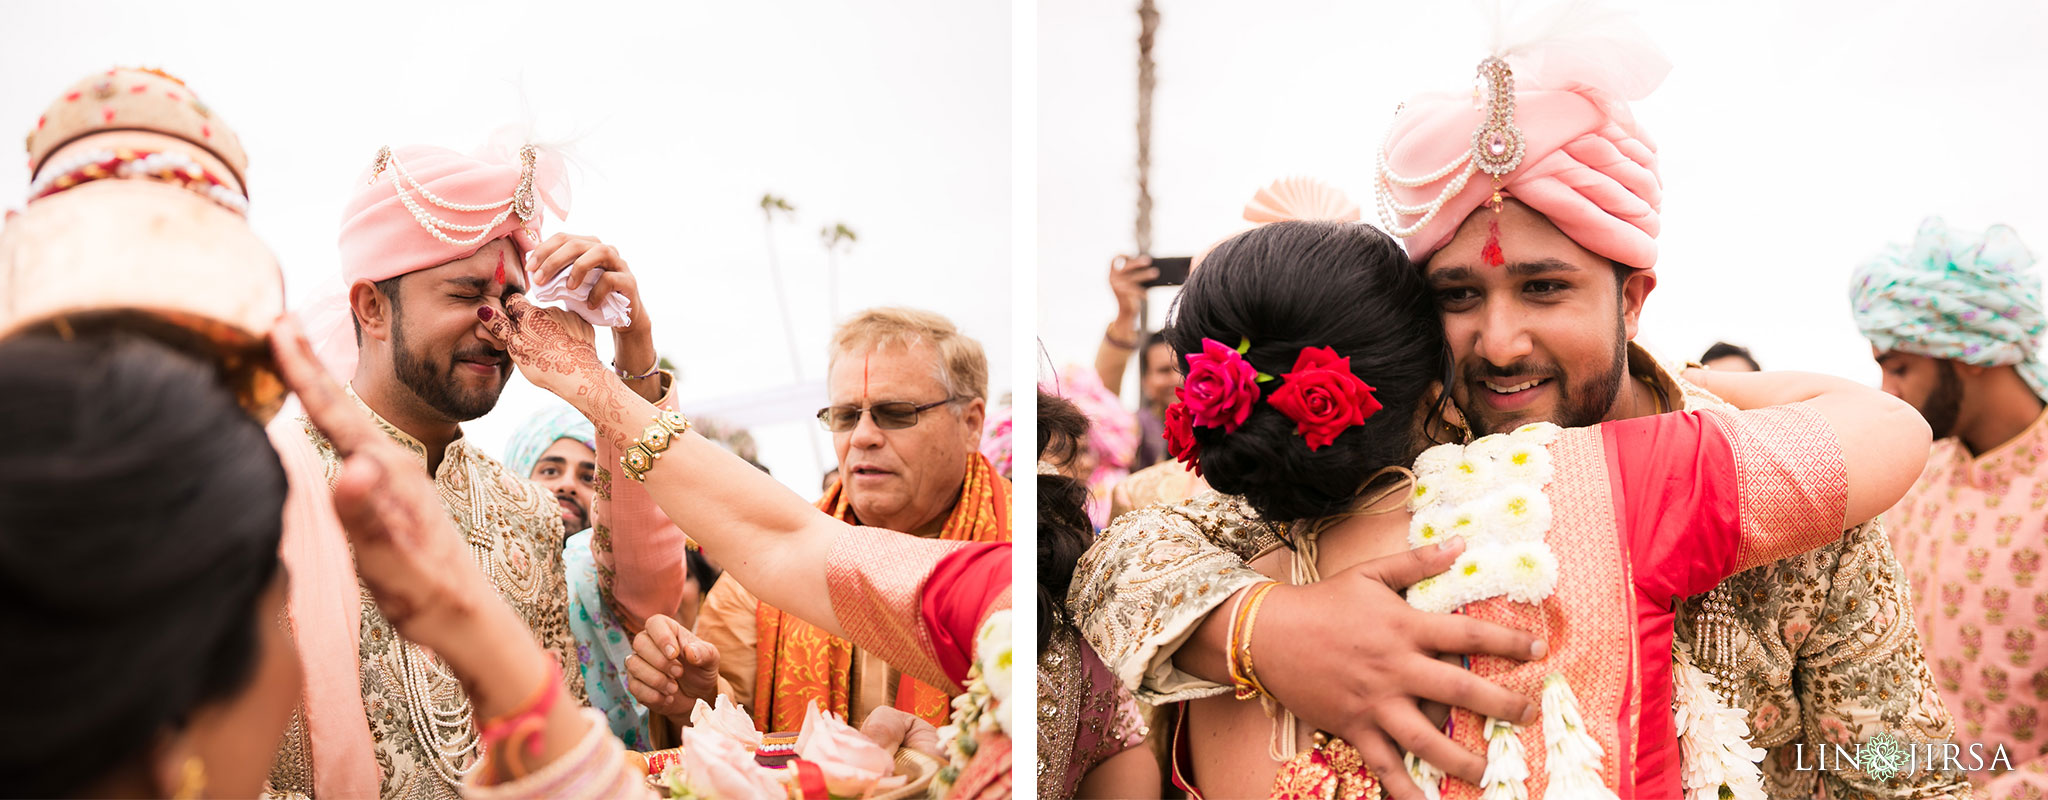 025 montage laguna beach indian baraat wedding photography